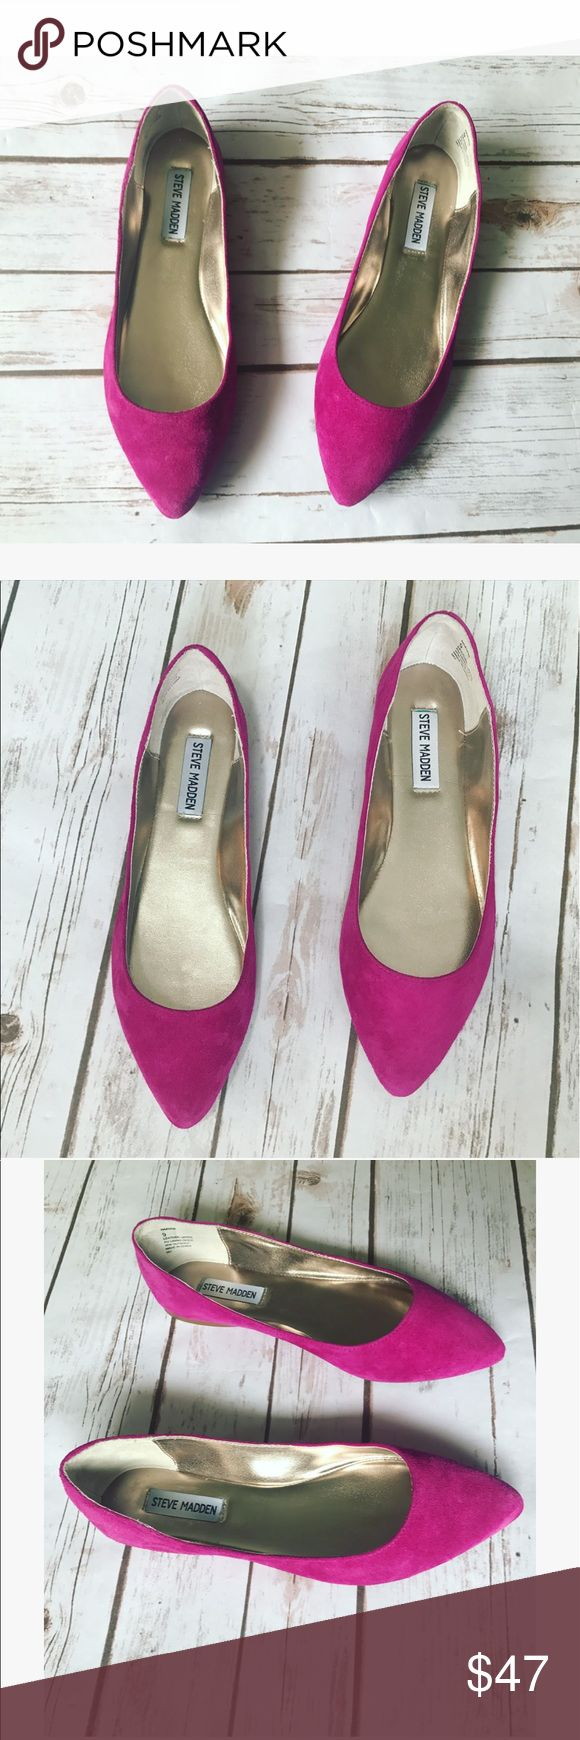 Beautiful Steve Madden flats   Beautiful Steve Madden flats in gorgeous hot pink color and size 9, these are so adorable and great for summer, new never worn  Steve Madden Shoes Flats & Loafers